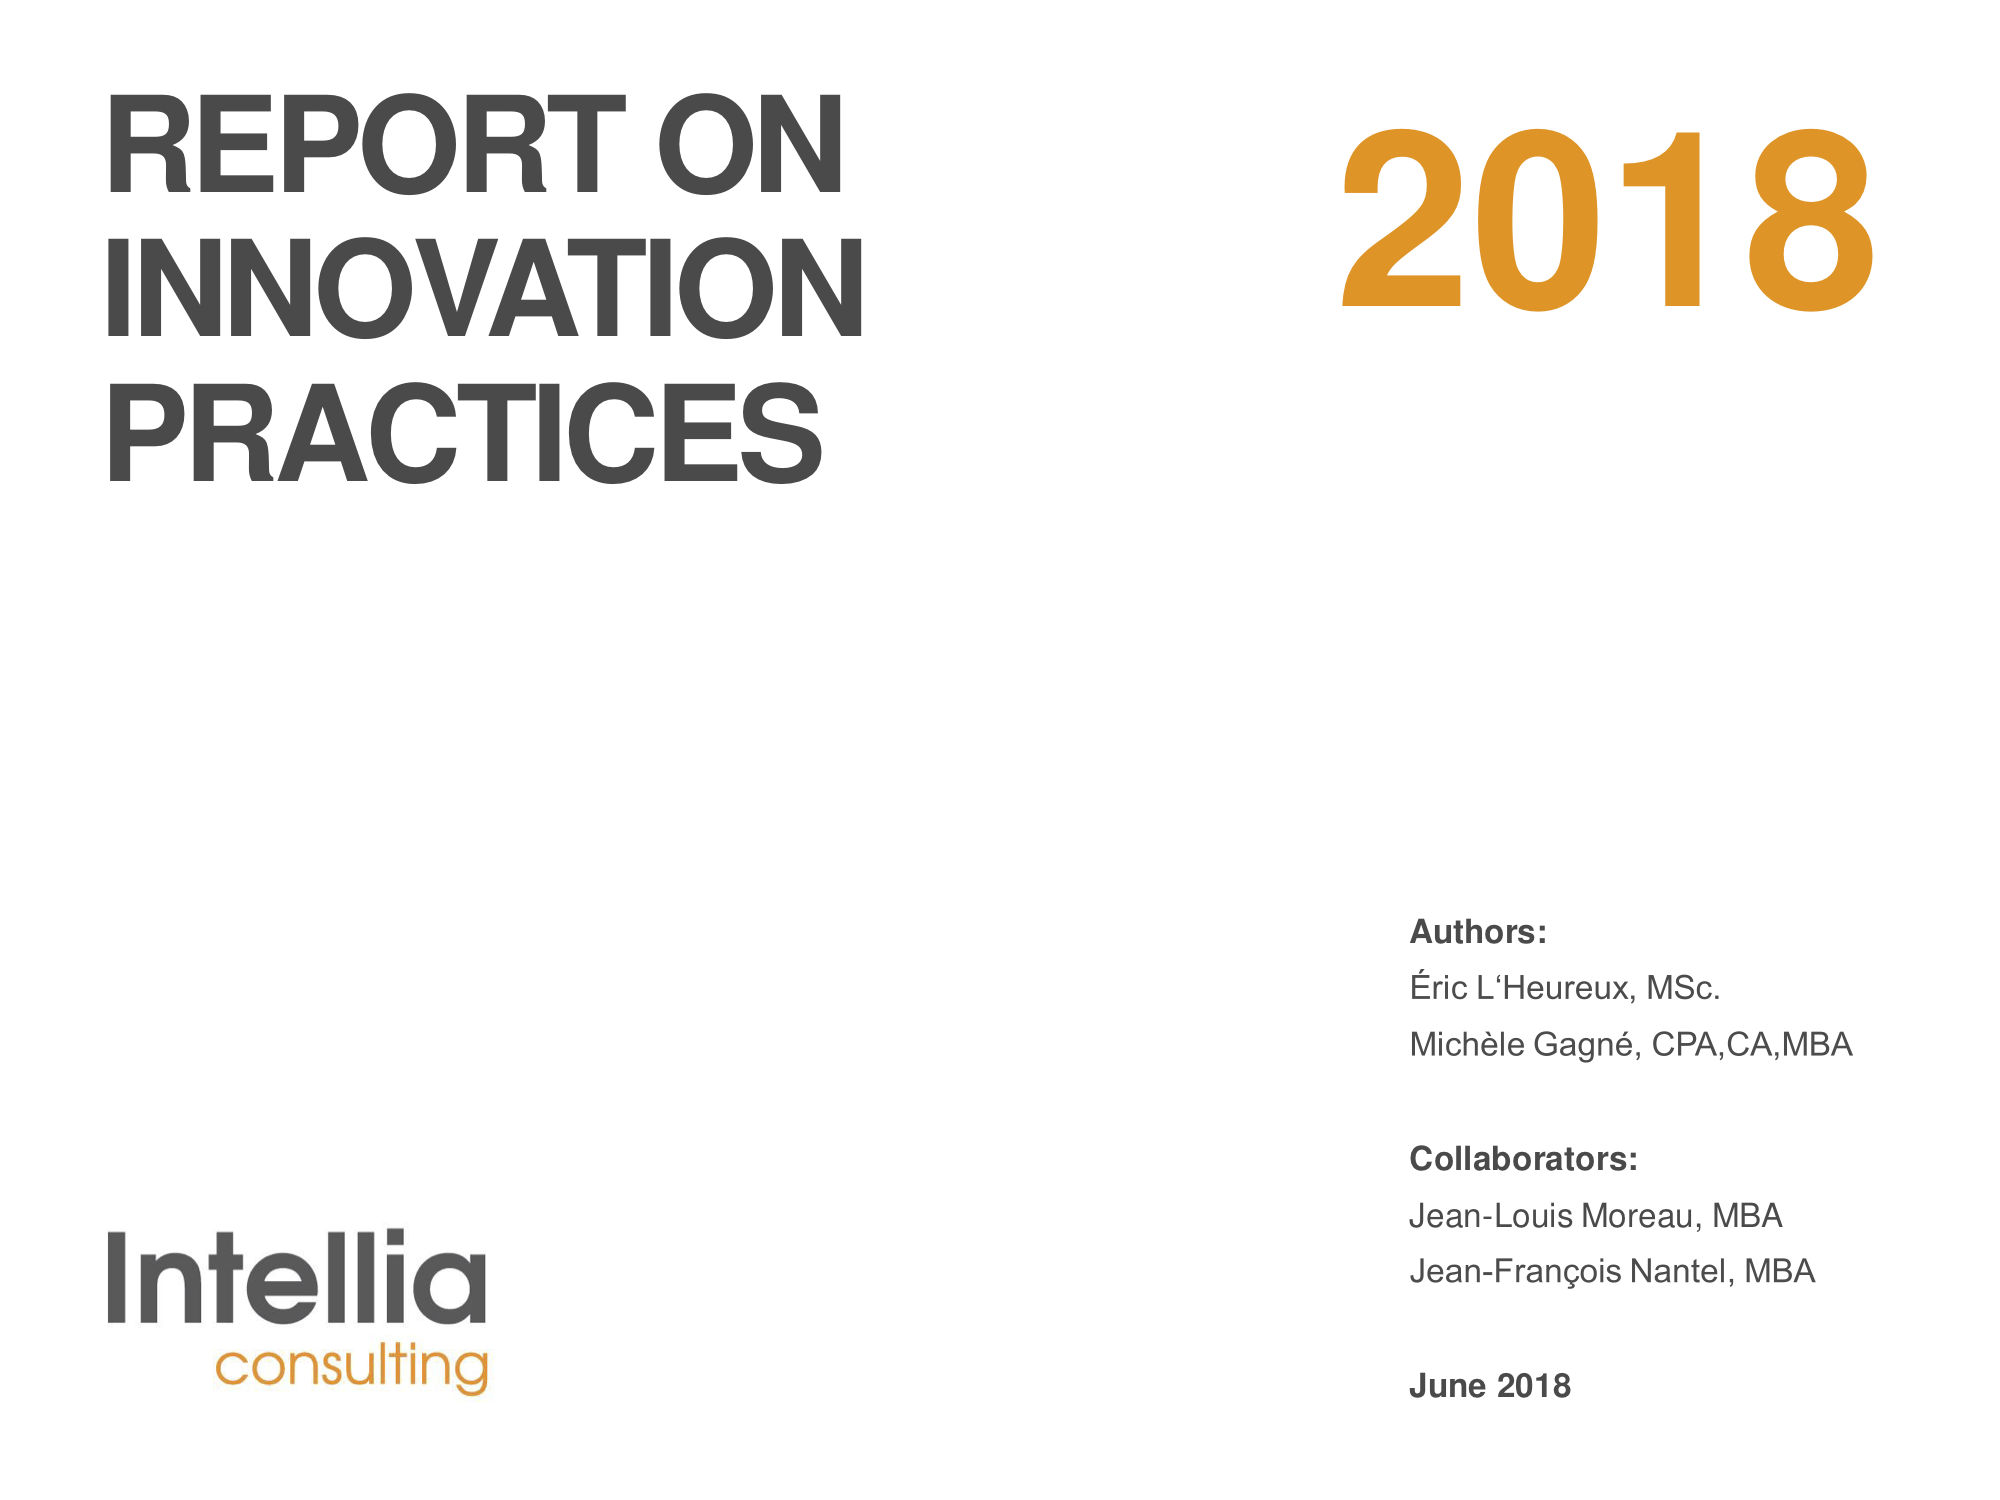 Report 2018 on innovation practices